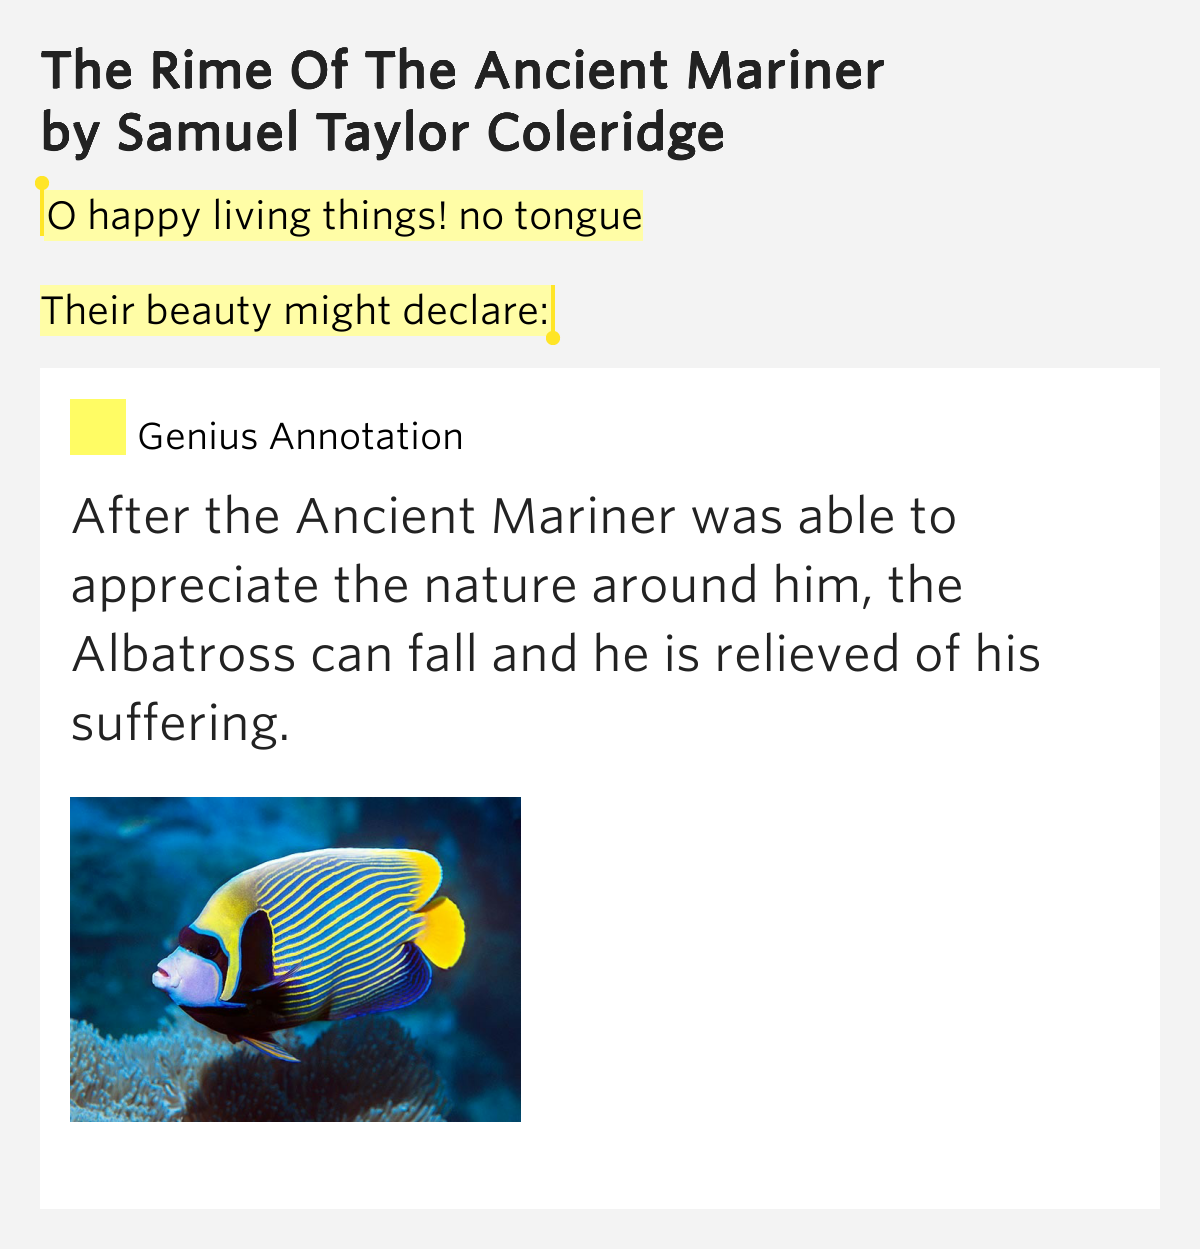 a revelation in life in the rime of the ancient mariner by samuel coleridge Samuel taylor coleridge's the rime of the ancient mariner has been critiqued  since  coleridge struggled with his faith for most of his adult life, and this was  directly  this revelation to the reader would link the mariner to a.